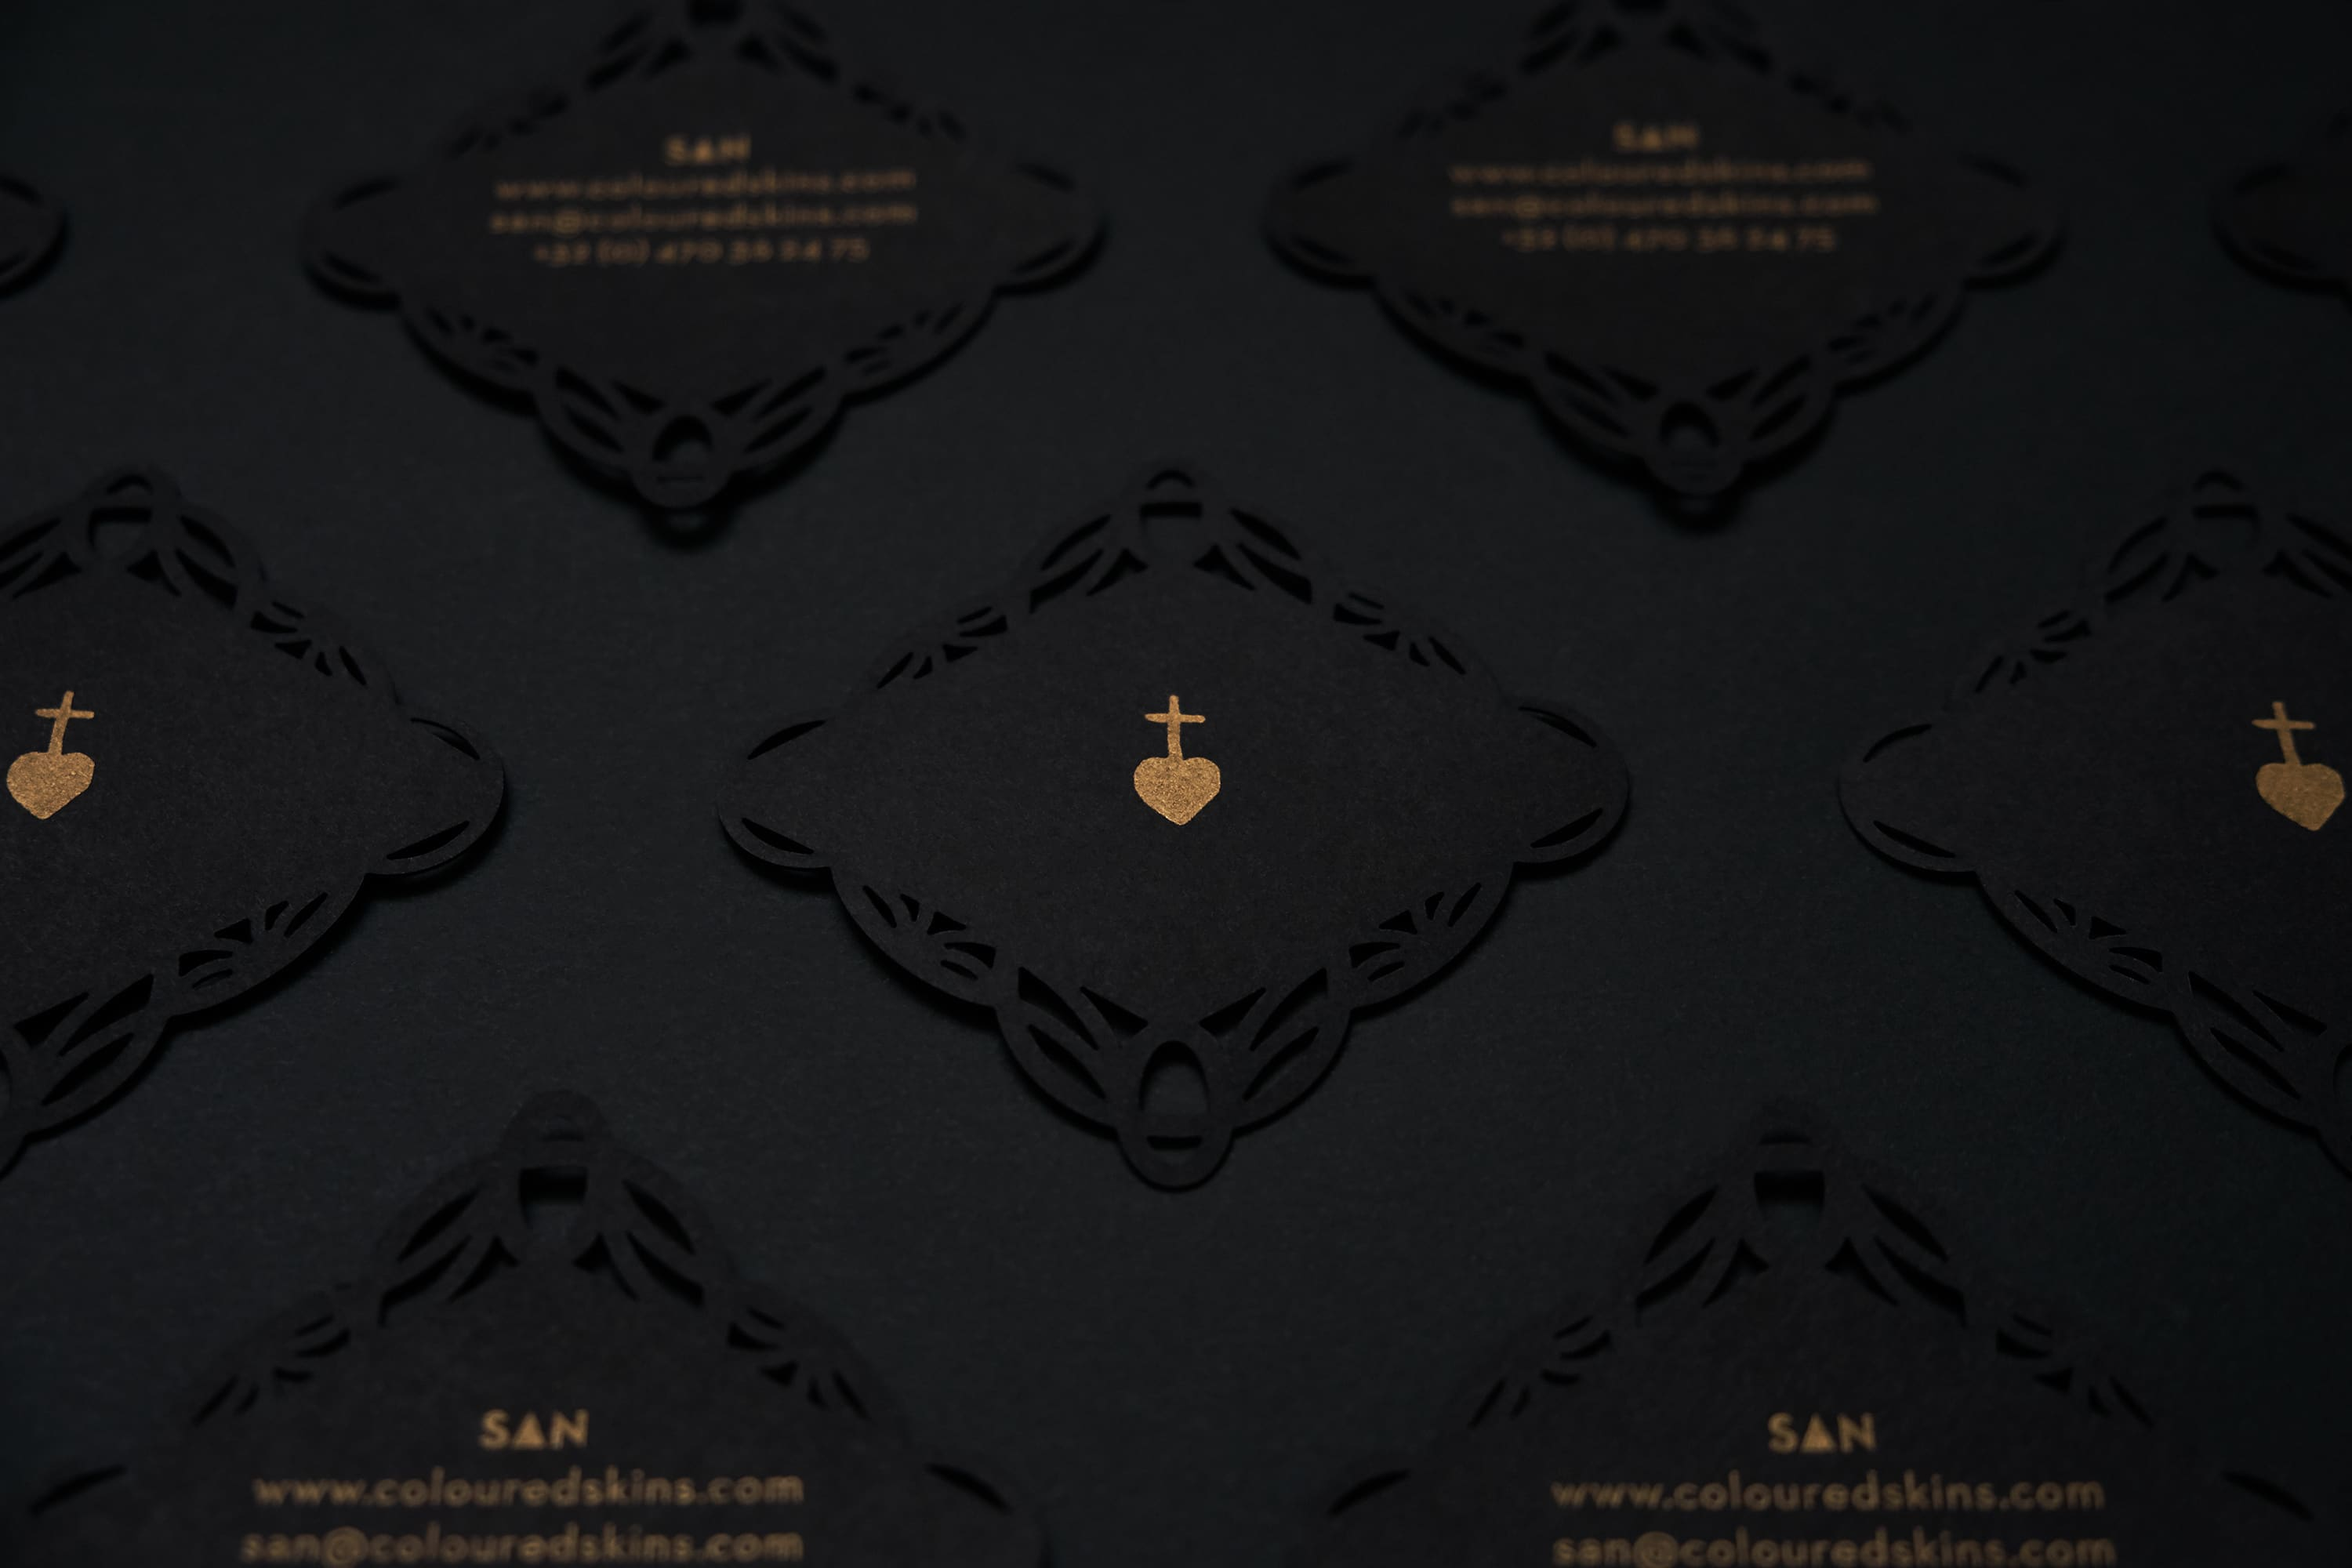 San tattoo artist business card